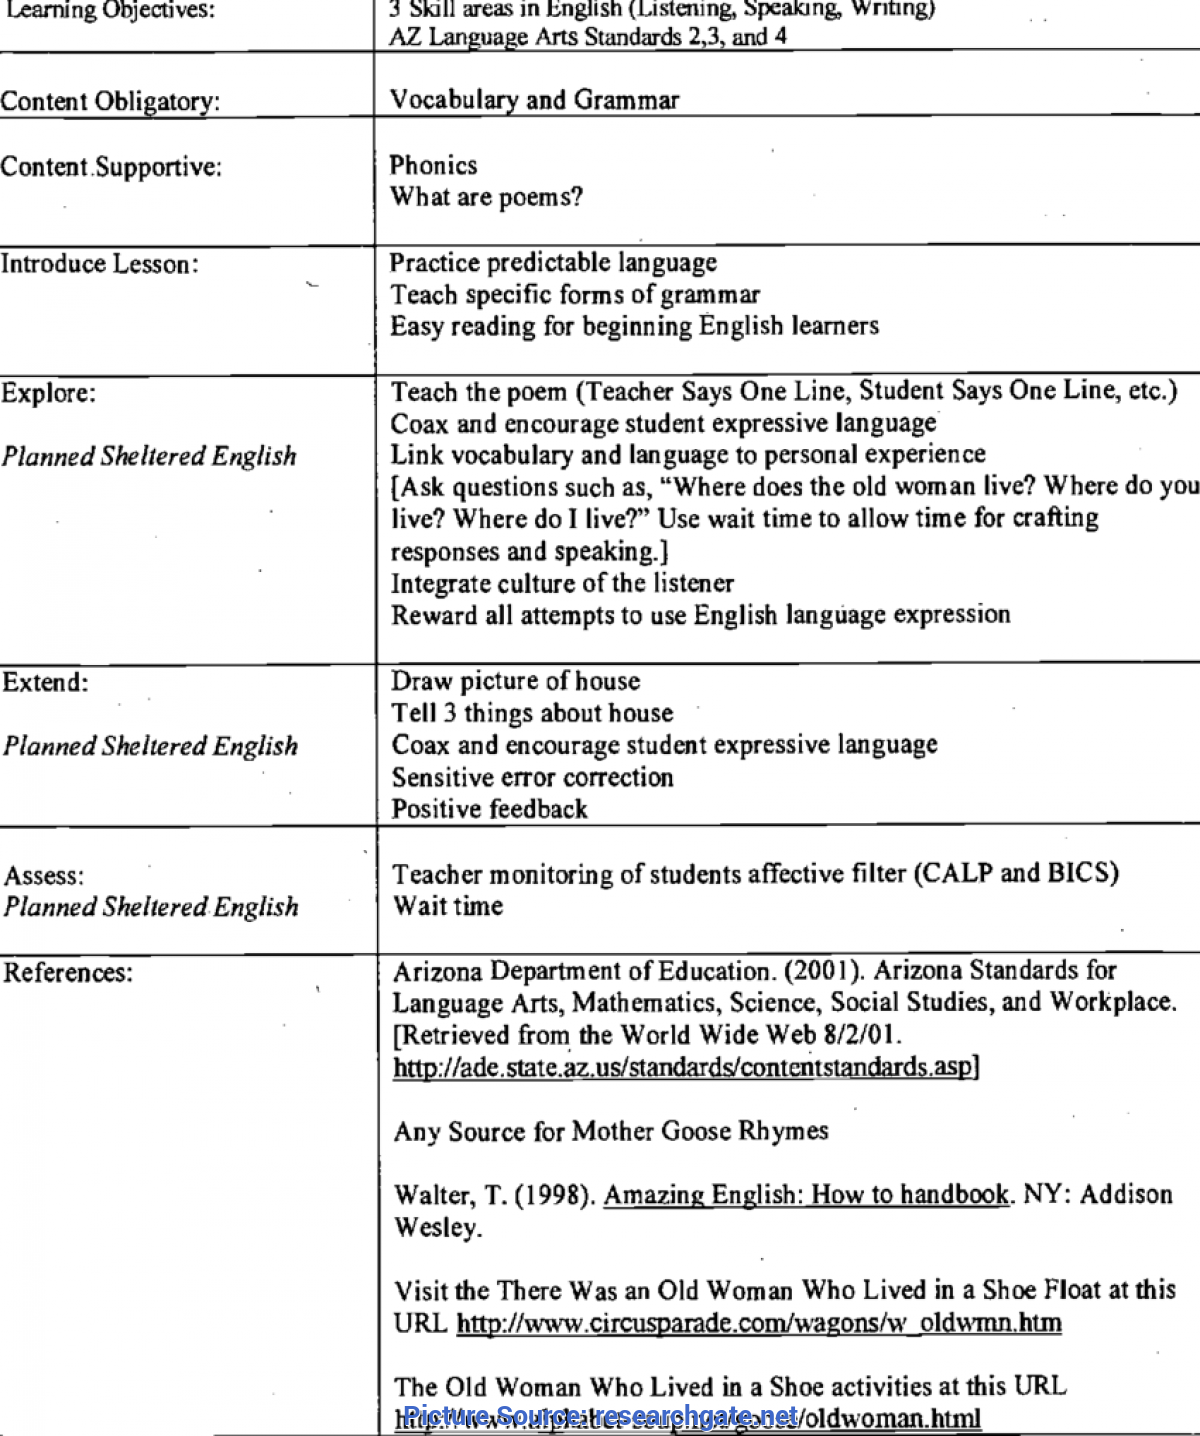 Fresh English Language Lesson Plans 19 Lesson Plan Developed By Glenn Bergquist For A Young Englis